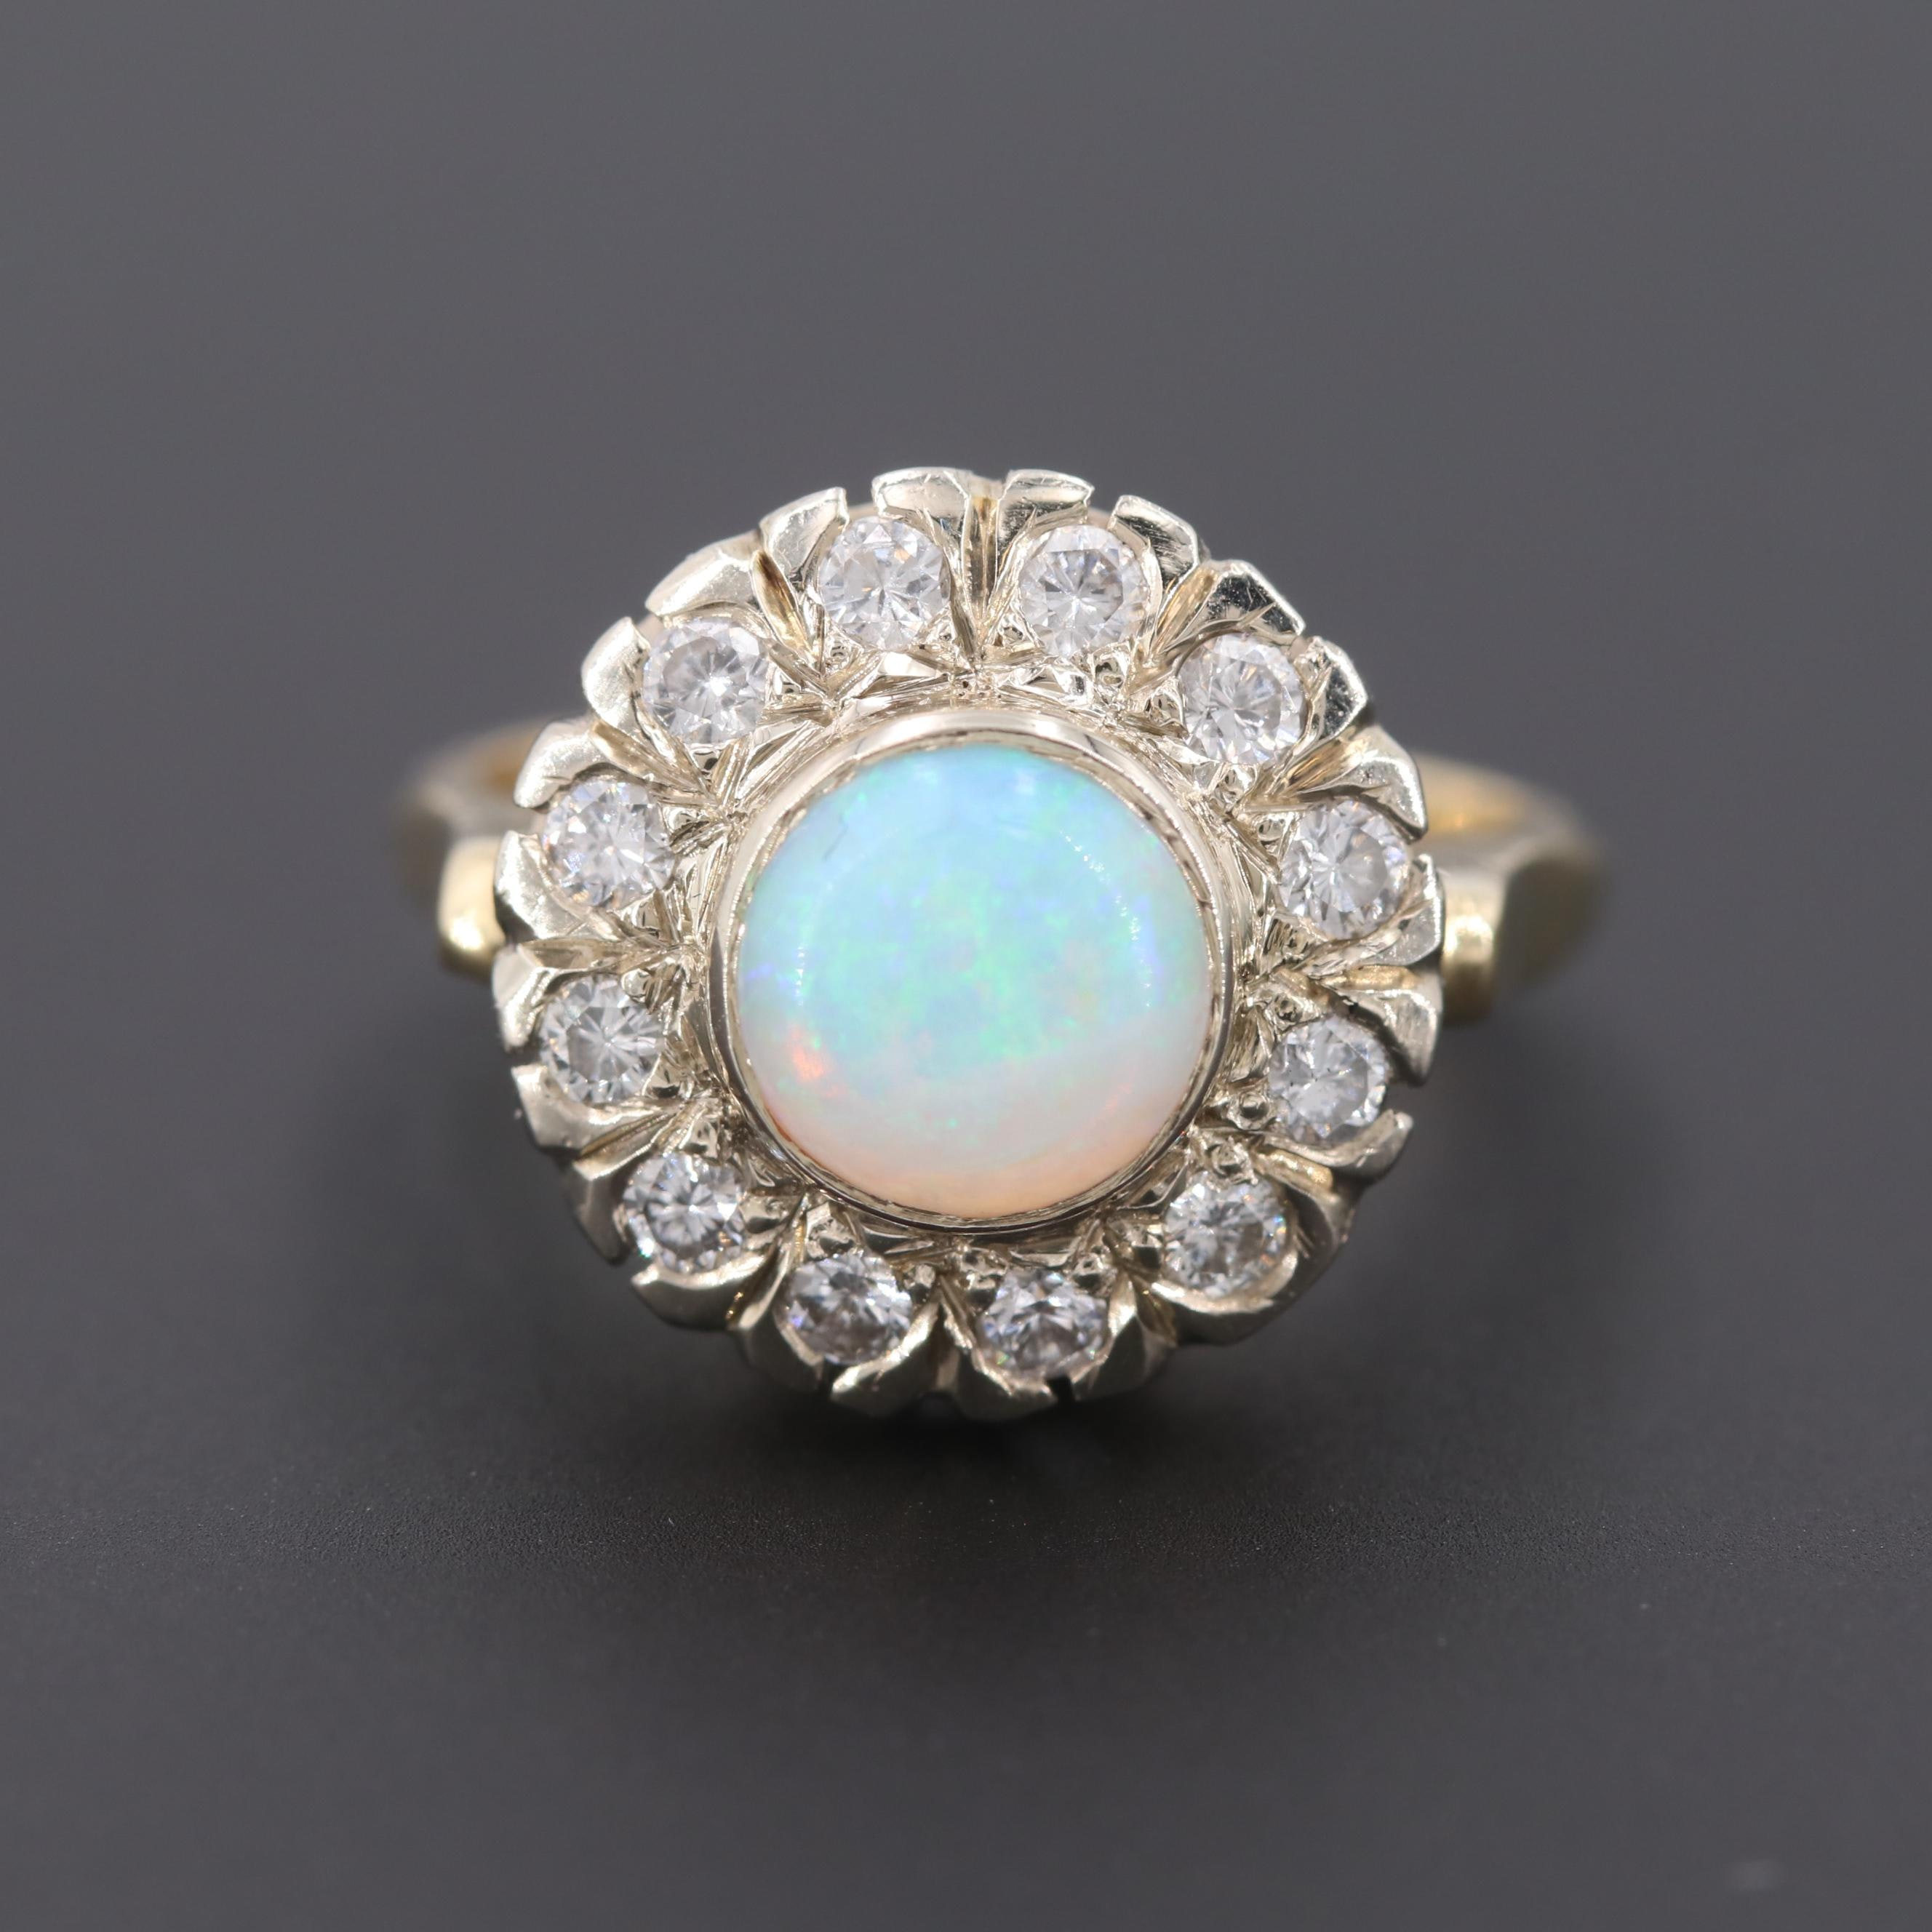 14K Yellow and White Gold Opal and Diamond Ring